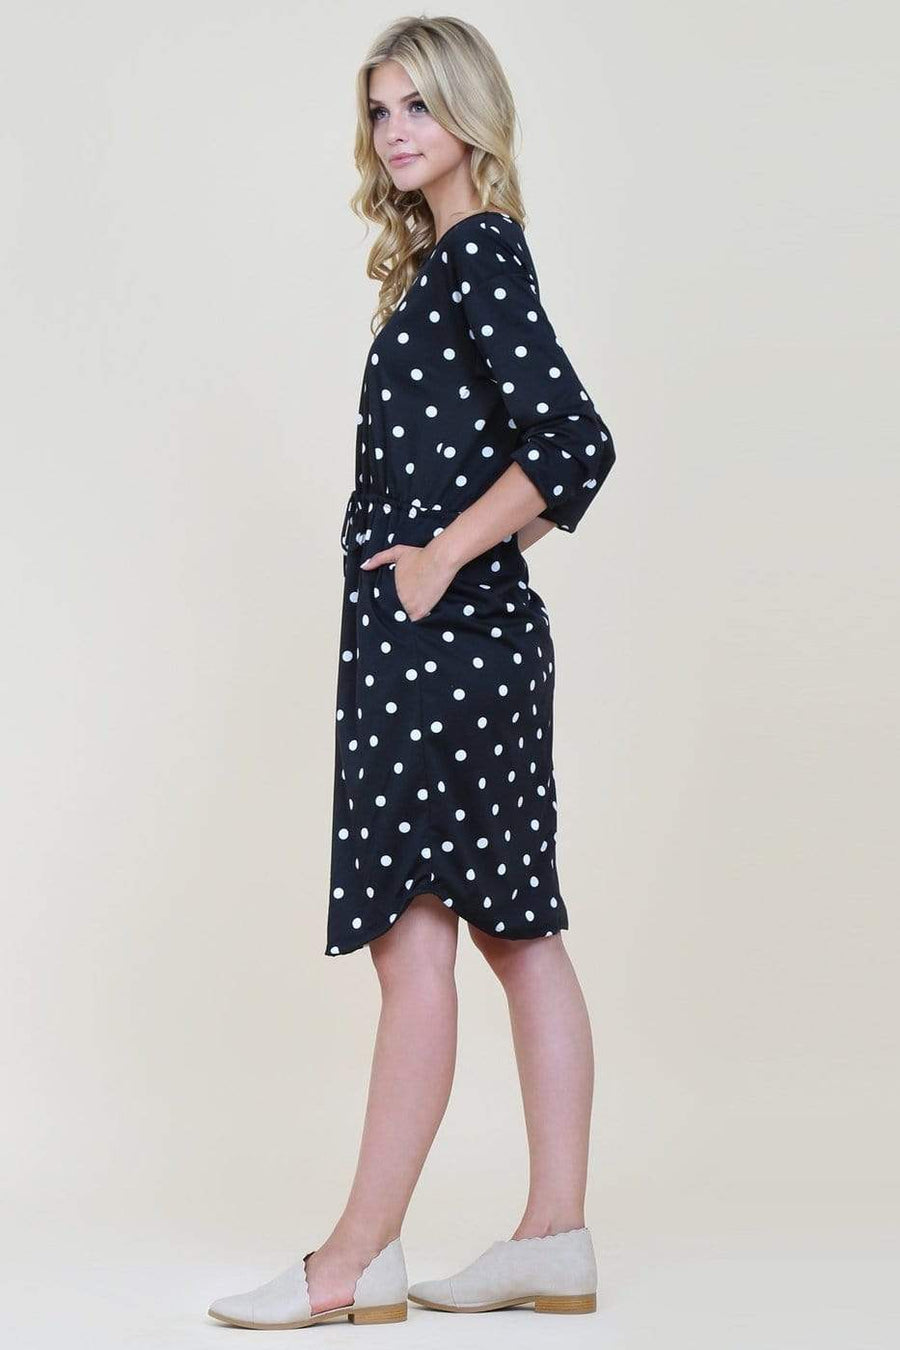 Black Polka Dot Dress With Side Pockets - Hello, Sunshine Market